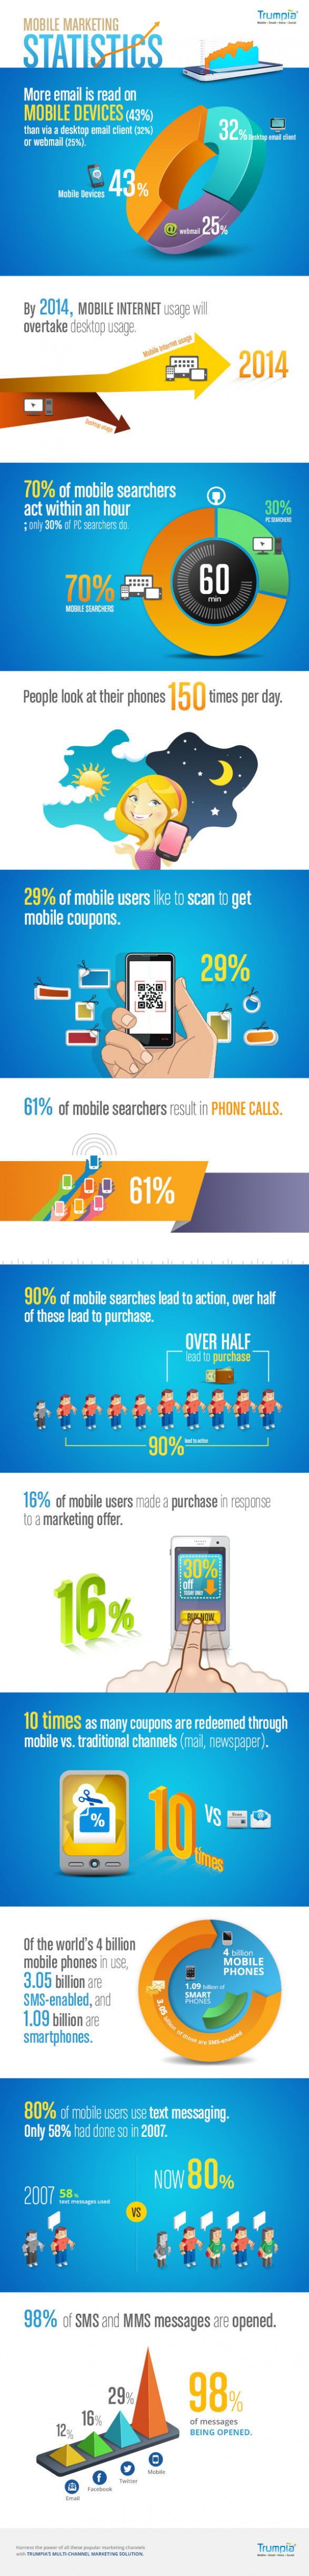 Mobile Marketing Statistics  2013 Mobile Marketing Statistics 2013 Mobile Marketing Statistics  trumpia 523372a2471a5 w587